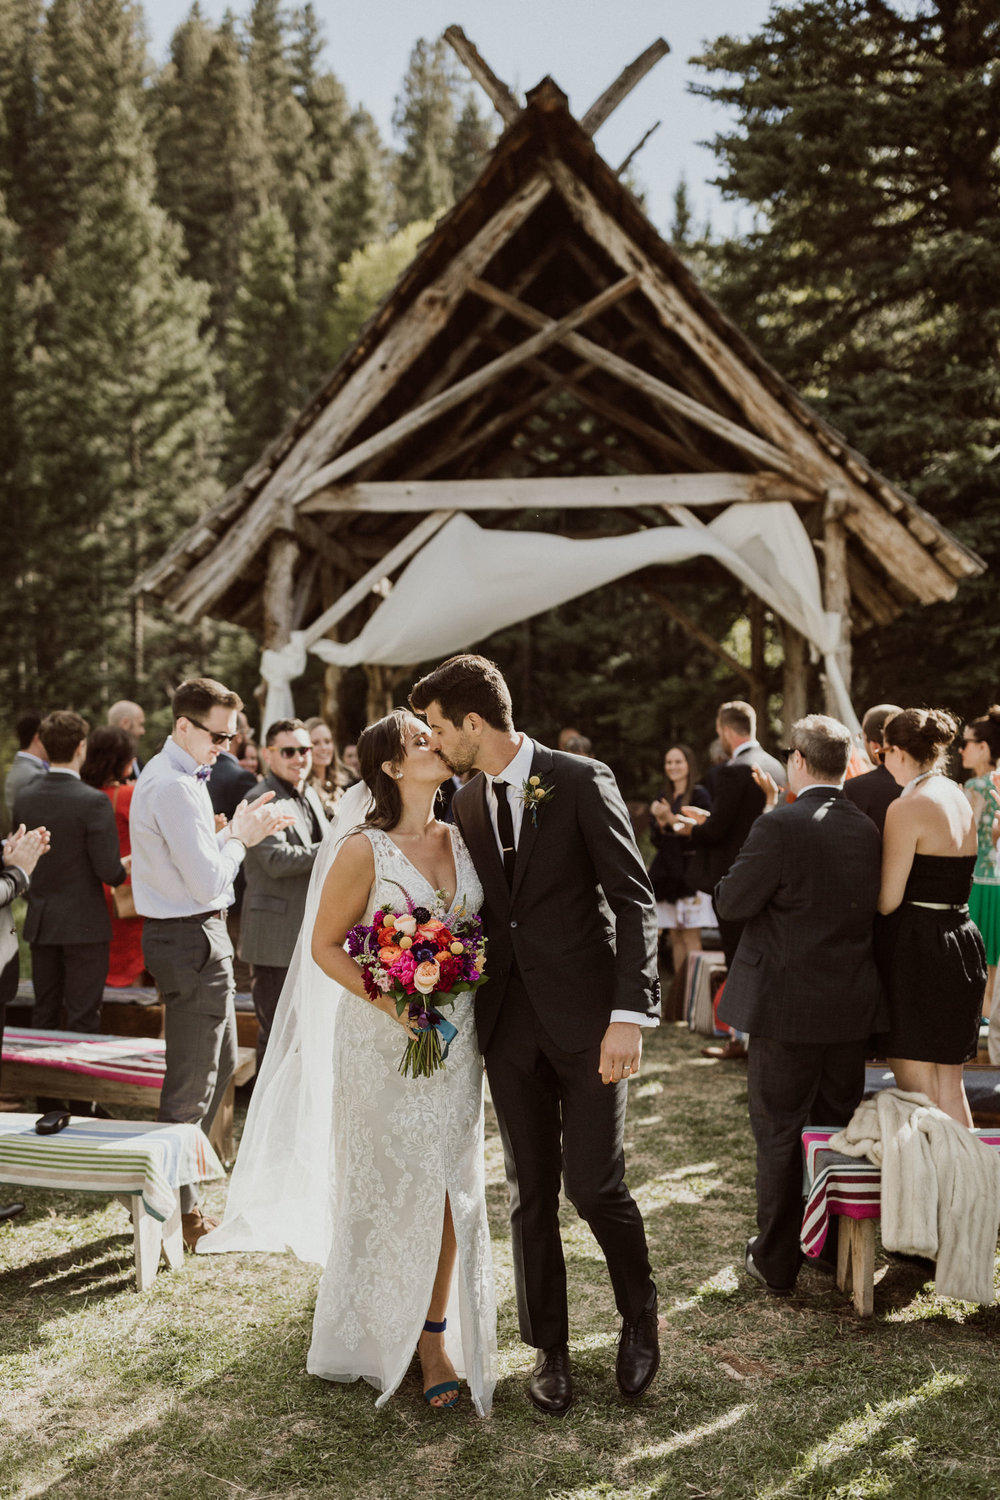 dunton-hot-springs-wedding-colorado-89.jpg